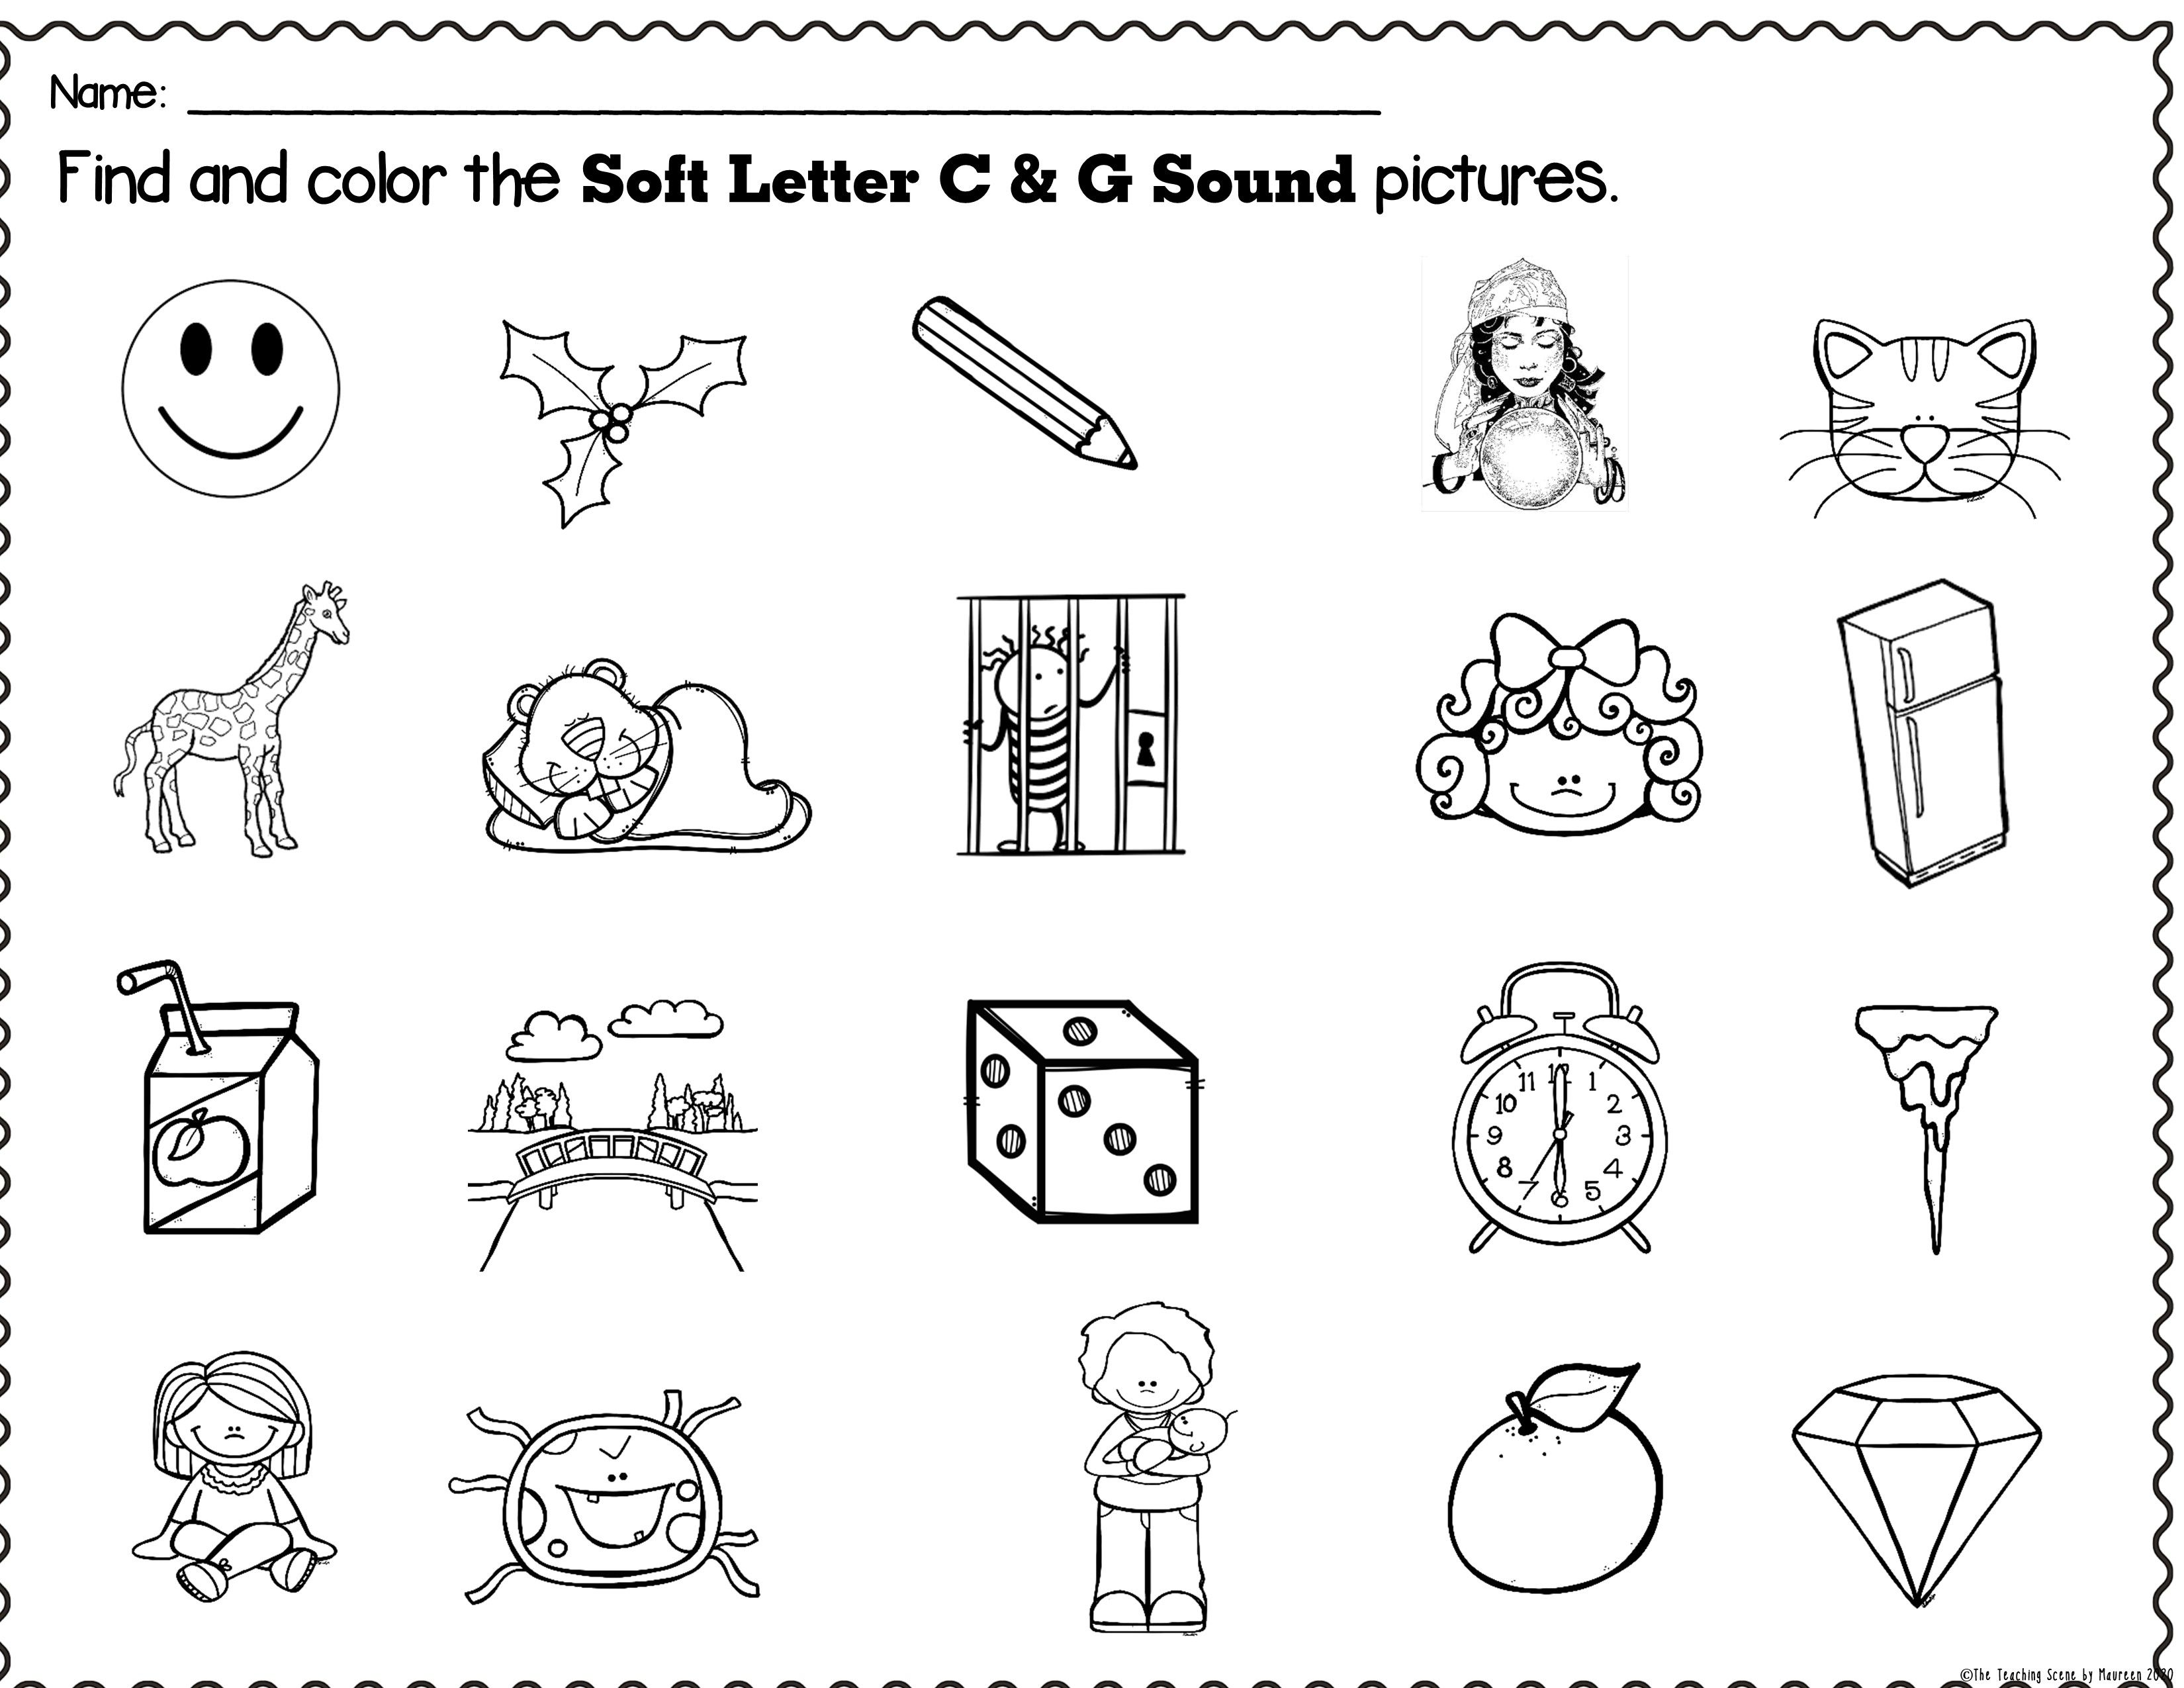 Hard Soft Letter Sounds Of C G Packet Word Cards Letter Sounds Reading Center Activity